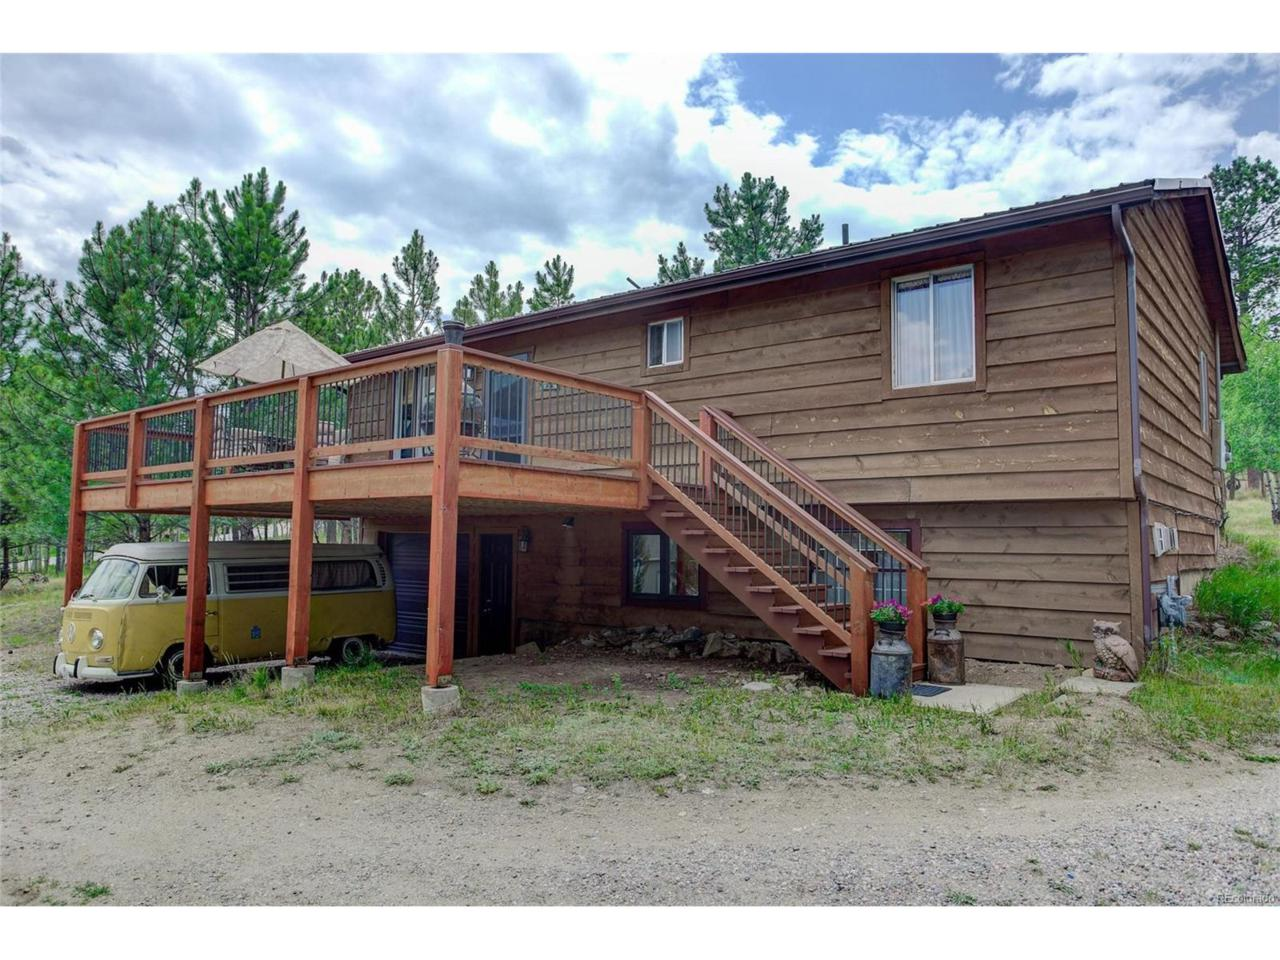 249 Burland Drive, Bailey, CO 80421 (MLS #3003132) :: 8z Real Estate